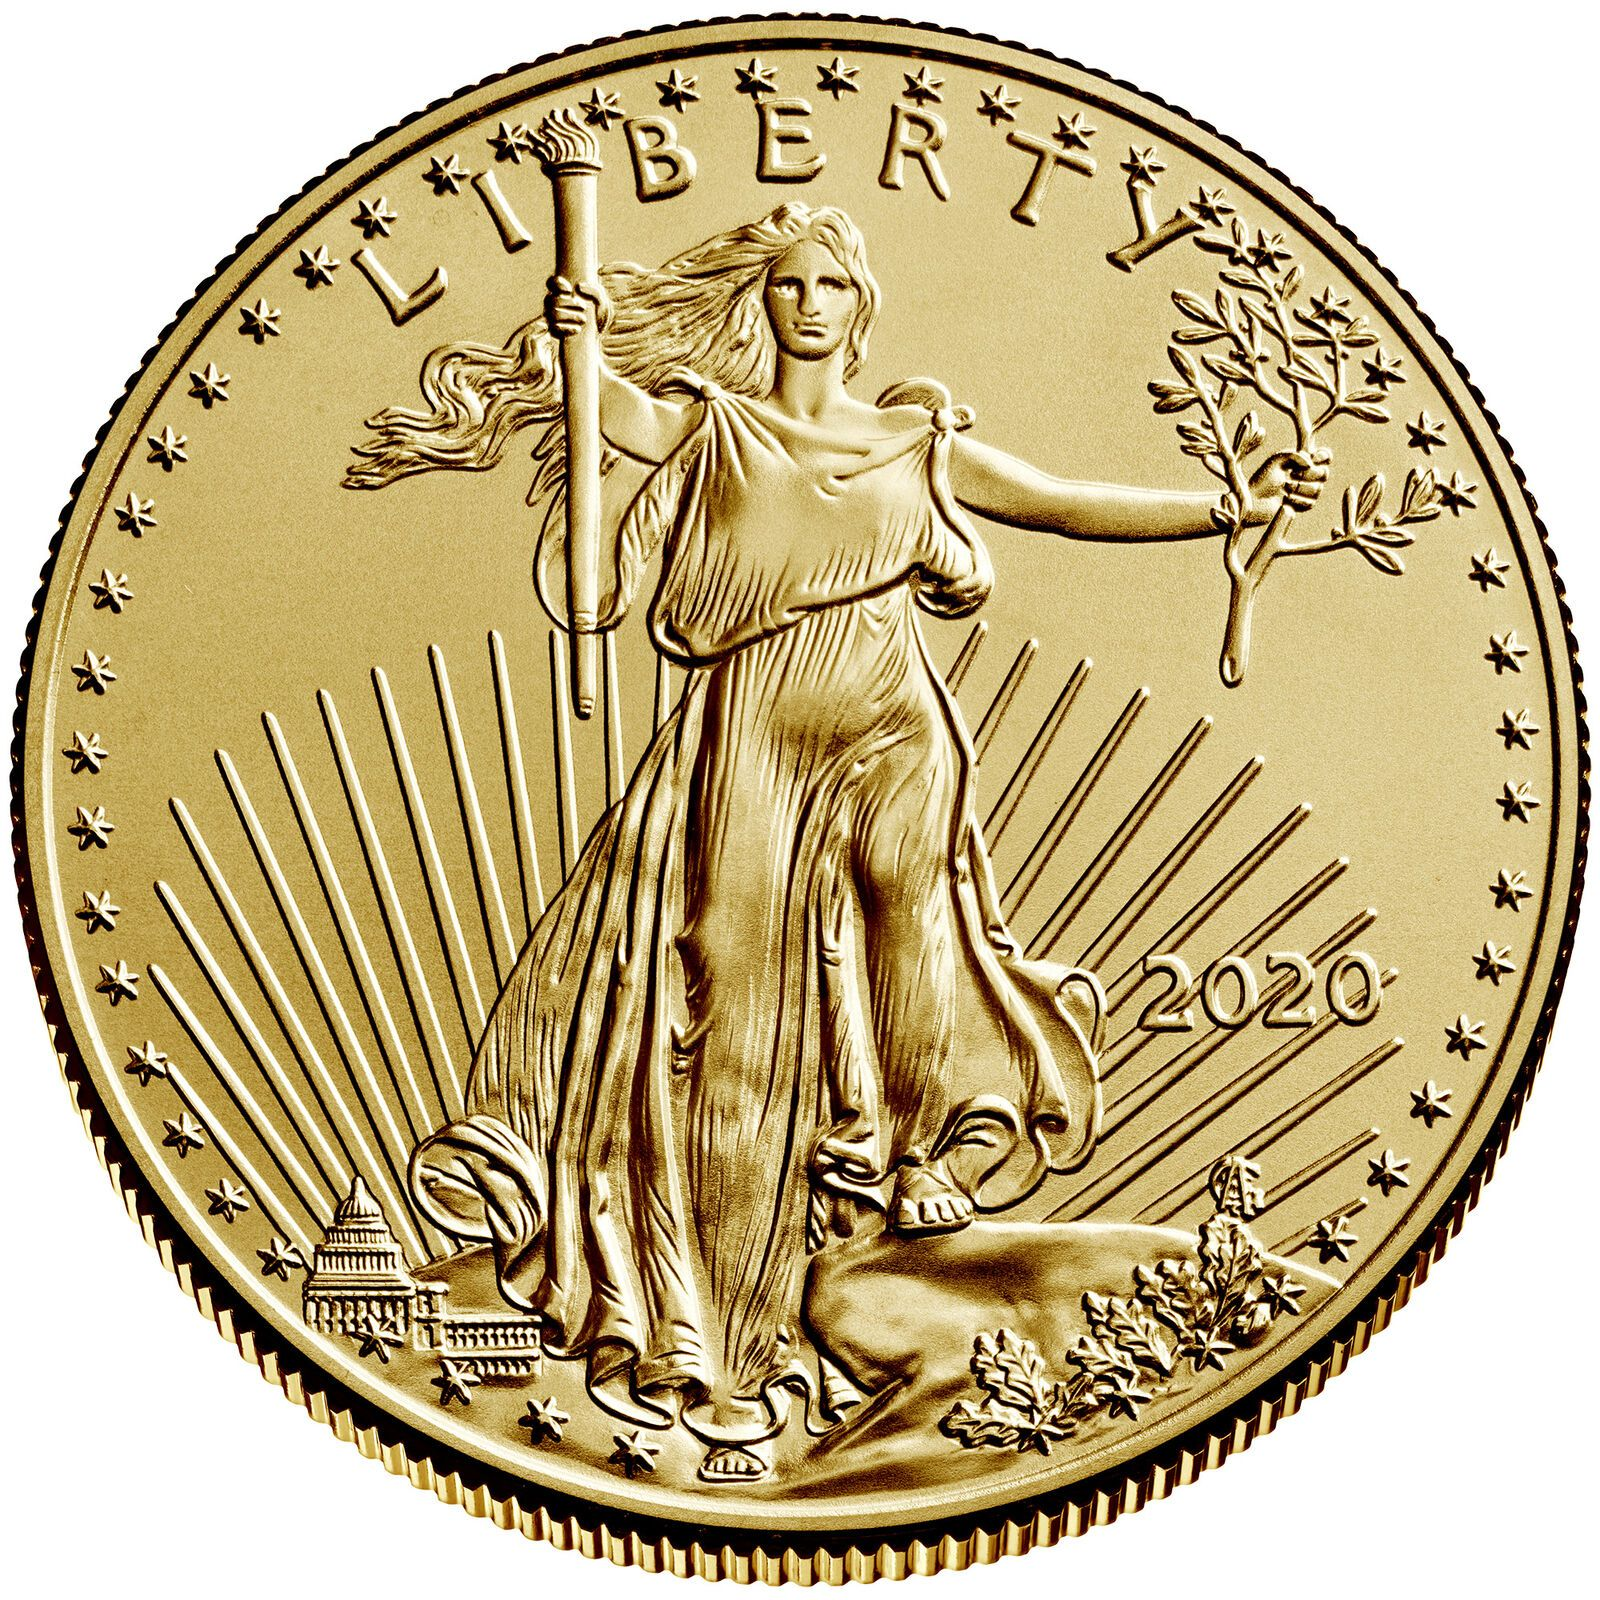 2020 5 American Gold Eagle 1 10 Oz Brilliant Uncirculated Ebay In 2020 Pragung Alte Munzen Goldankauf